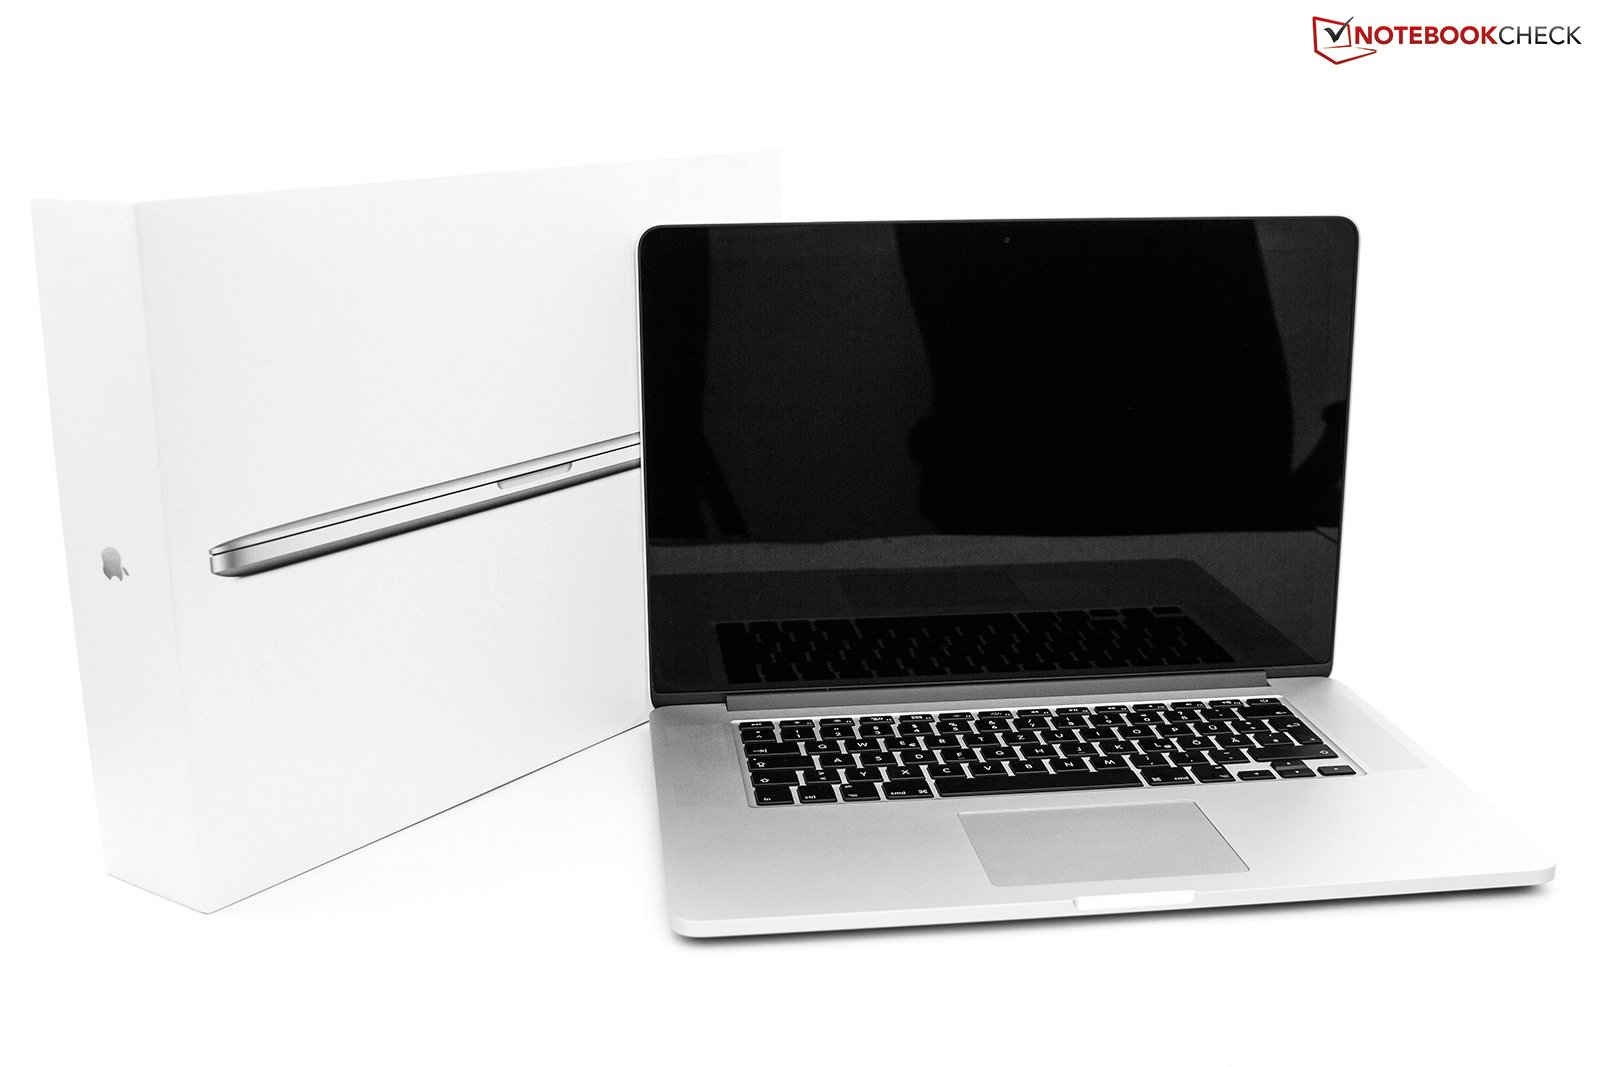 critique du apple macbook pro 15 retina 2 3 ghz mi 2012. Black Bedroom Furniture Sets. Home Design Ideas